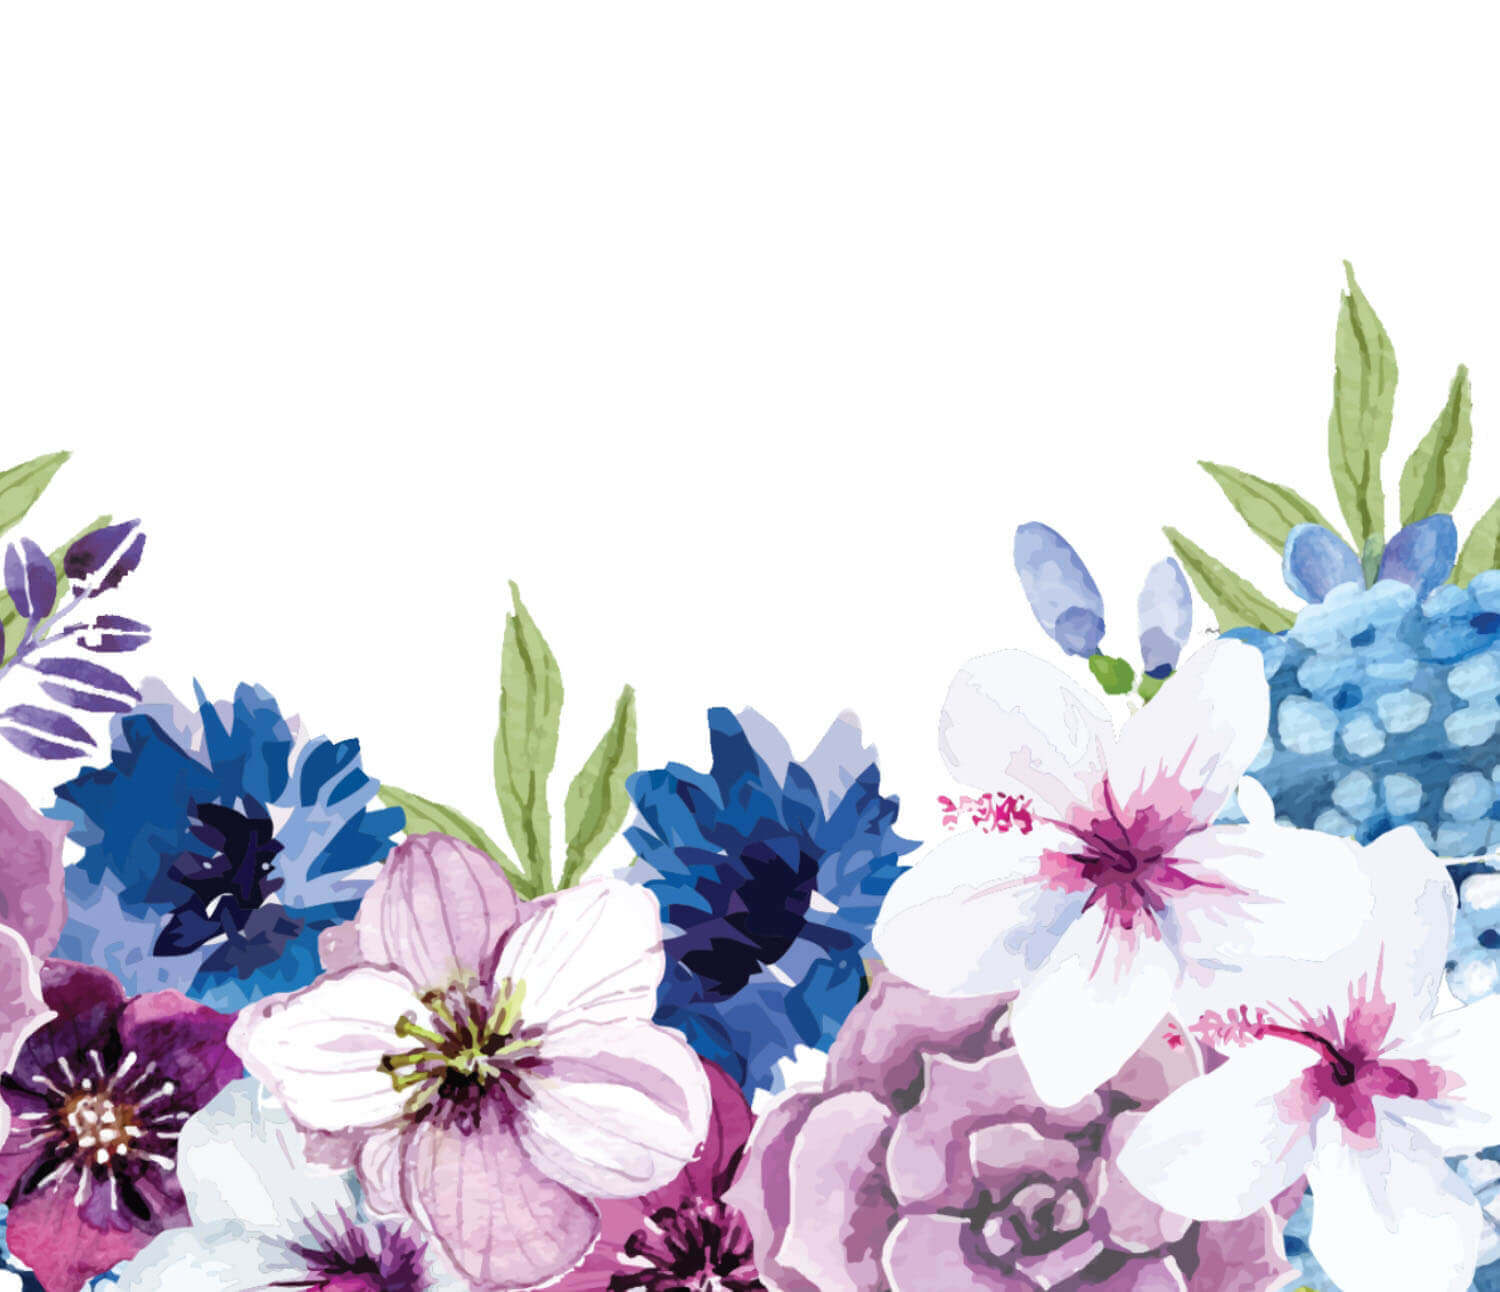 Colorful flowers illustration